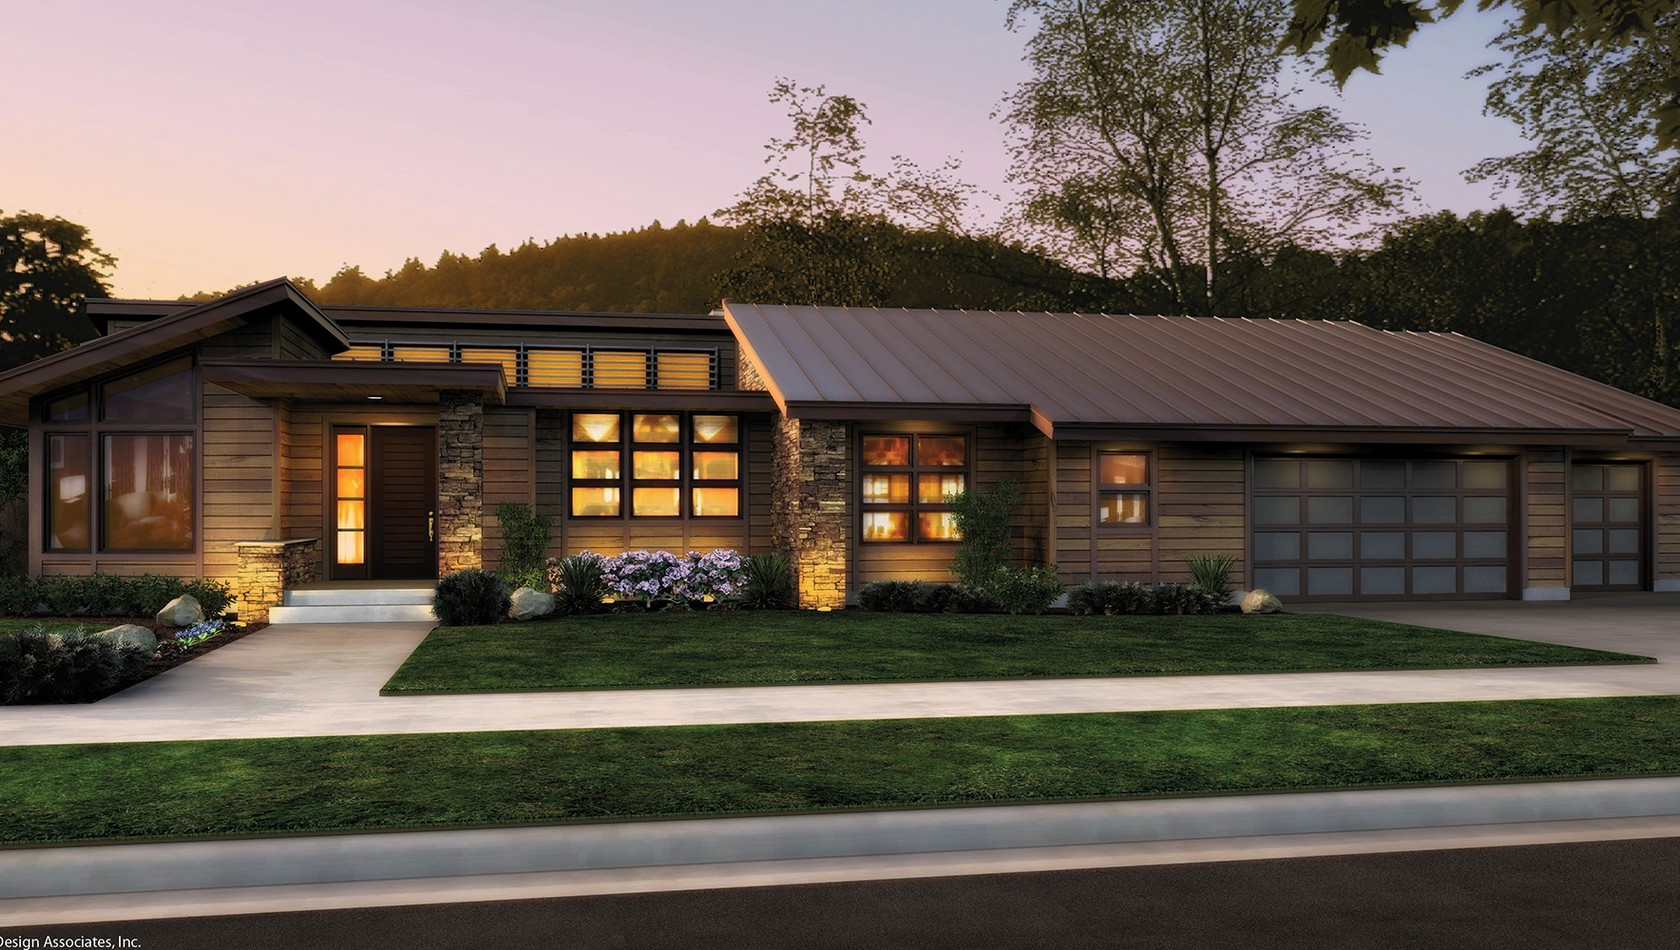 Main image for house plan 1327: The Mercer